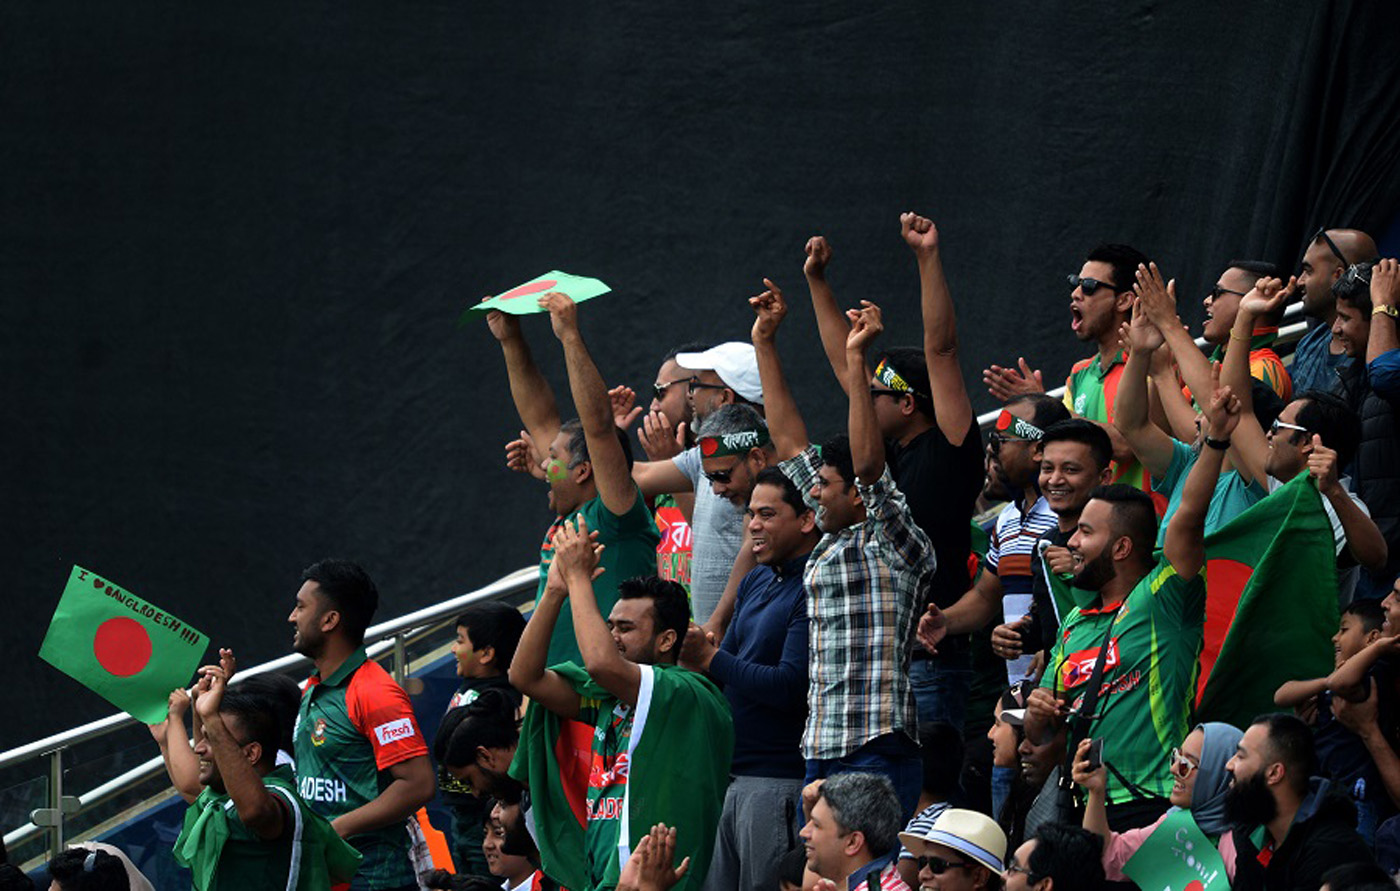 Bangladesh fans cheer a boundary during the ICC Champions Trophy Warm-up match between Bangladesh and Pakistan at Edgbaston on Saturday  in Birmingham, England.